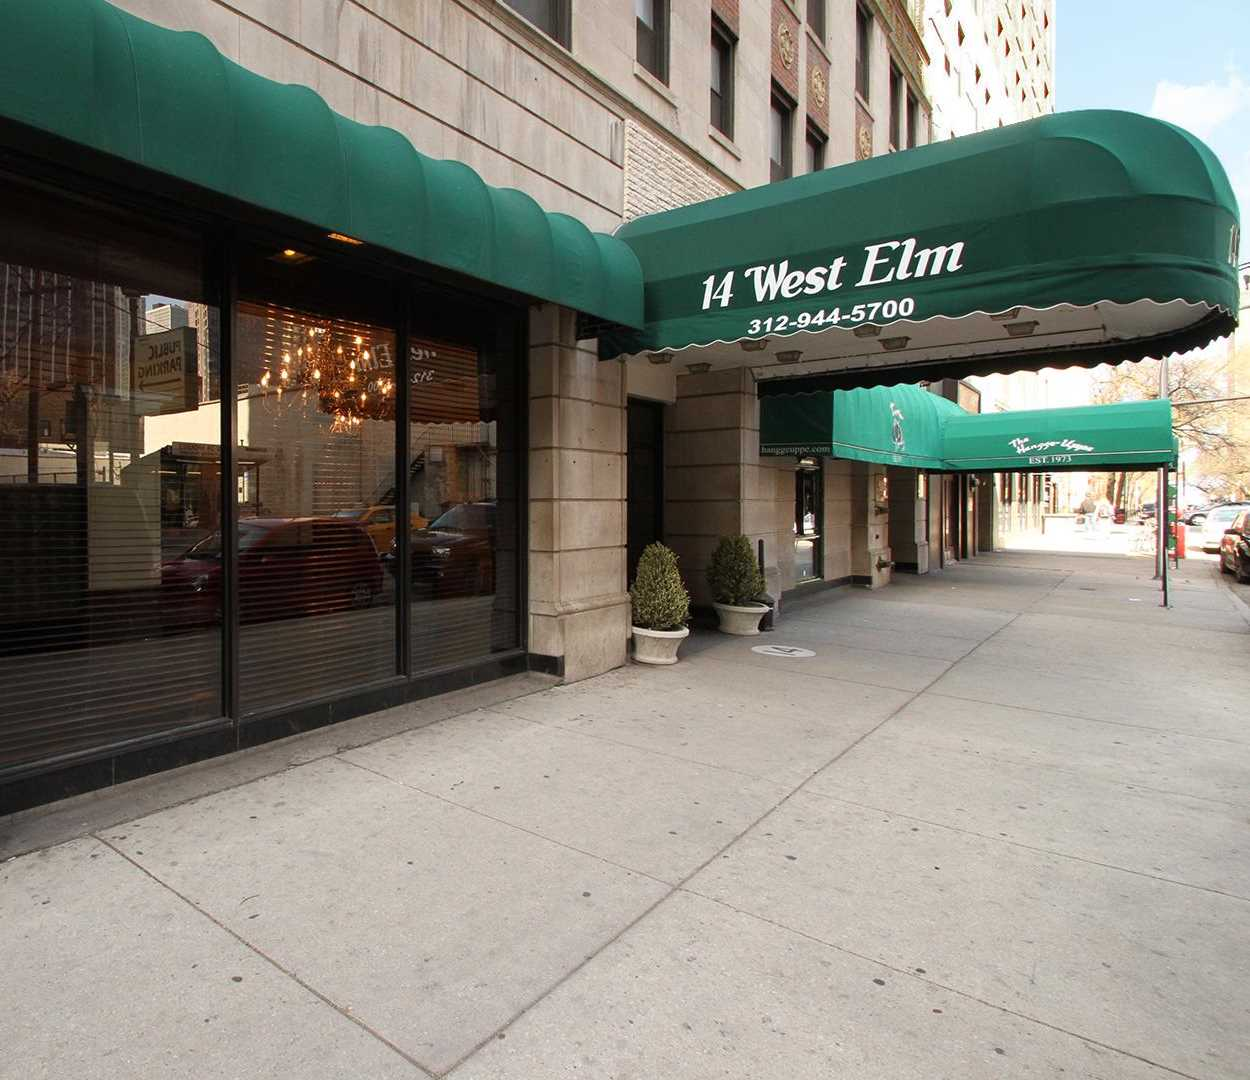 14 West Elm Apartments Apartment Listings and Reviews, Chicago IL ...